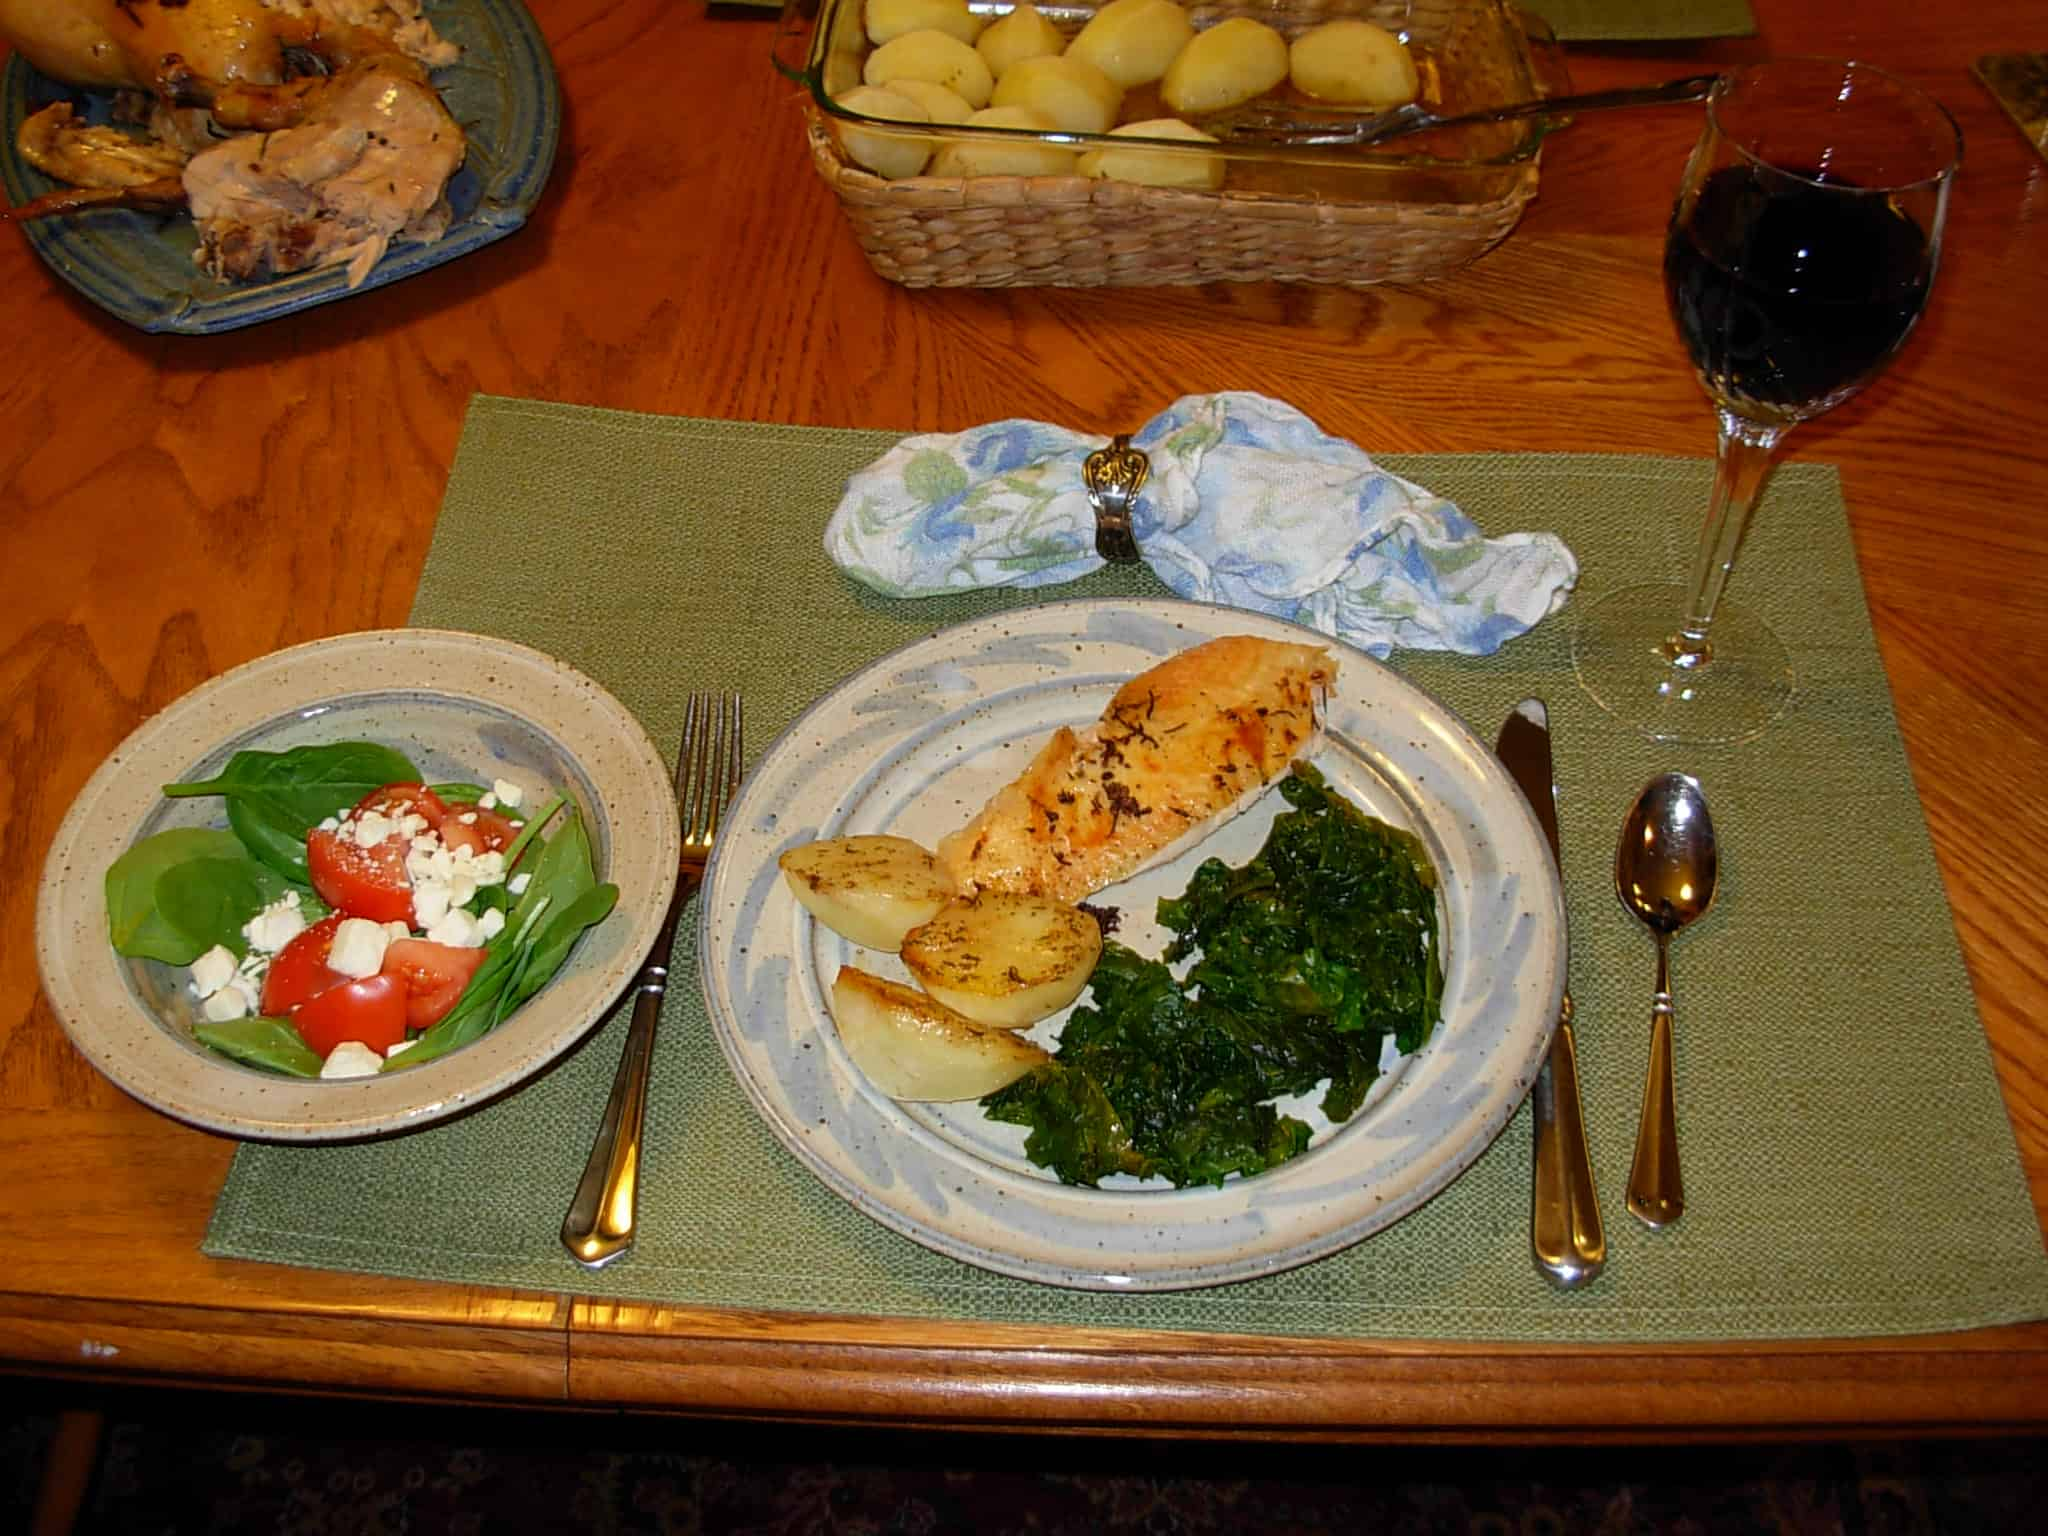 Oven Browned Potatoes, Wilted Kale and Rosemary Chicken. A good, home-cooked meal, better than Mom made.